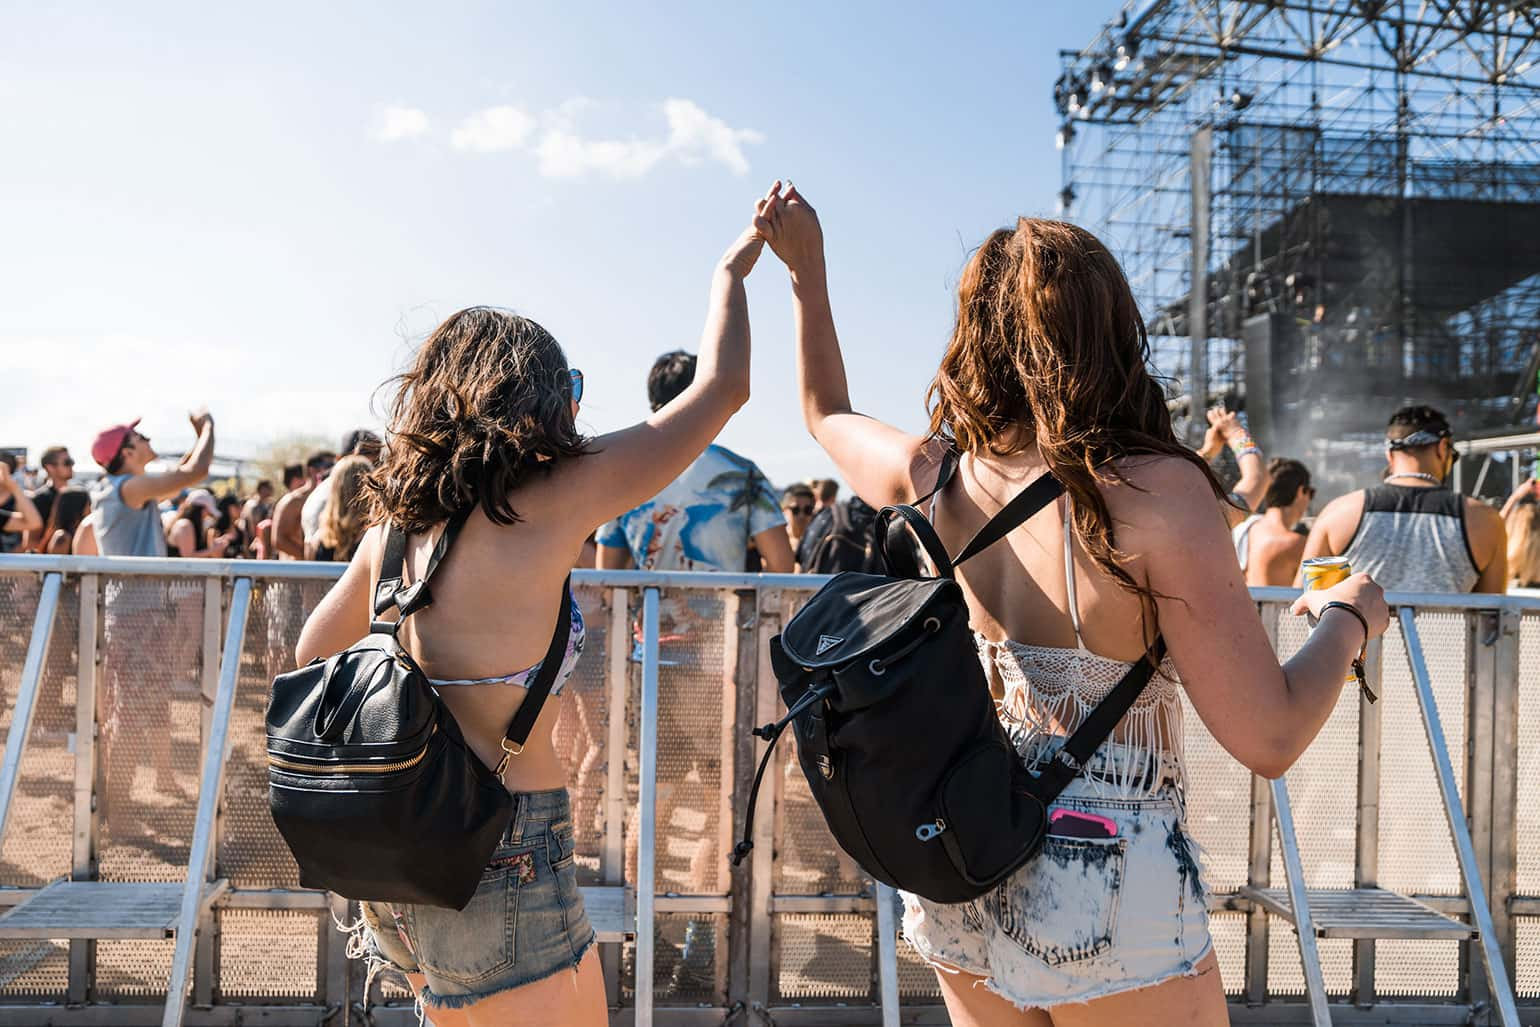 Two similarly dressed young women celebrate at an outdoor music festival.